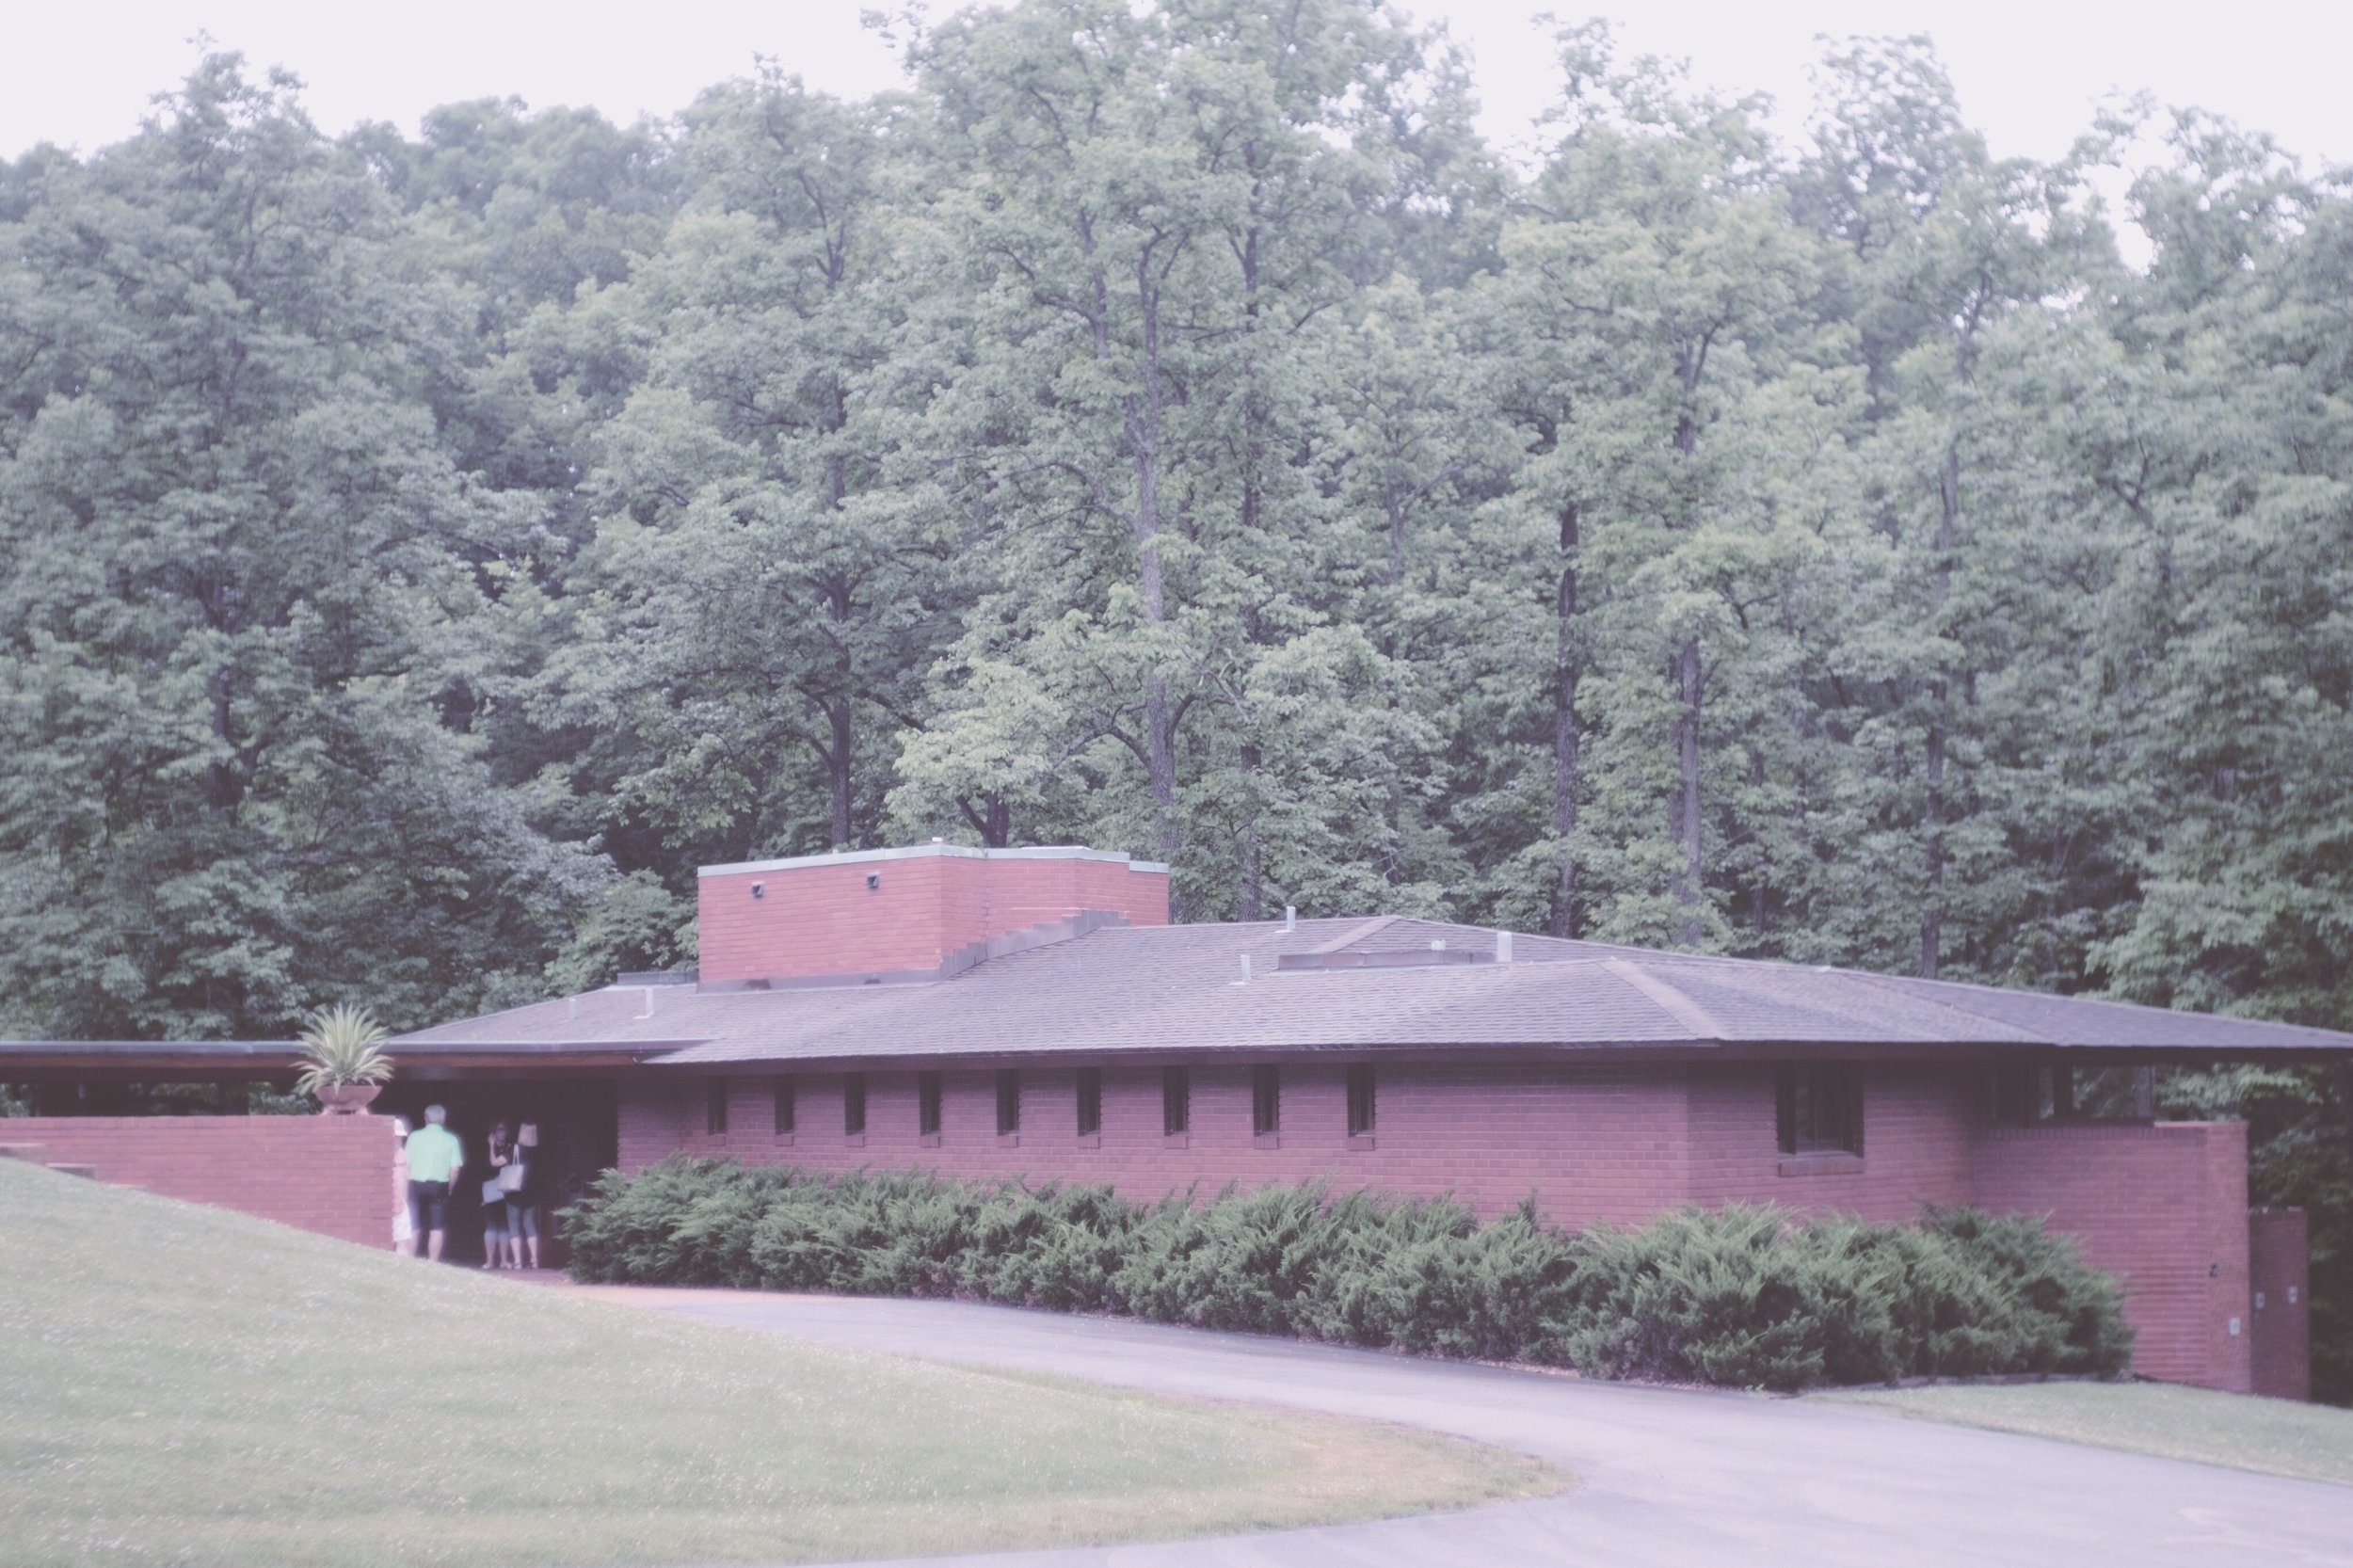 frank lloyd wright / russell kraus home in ebsworth park, mo